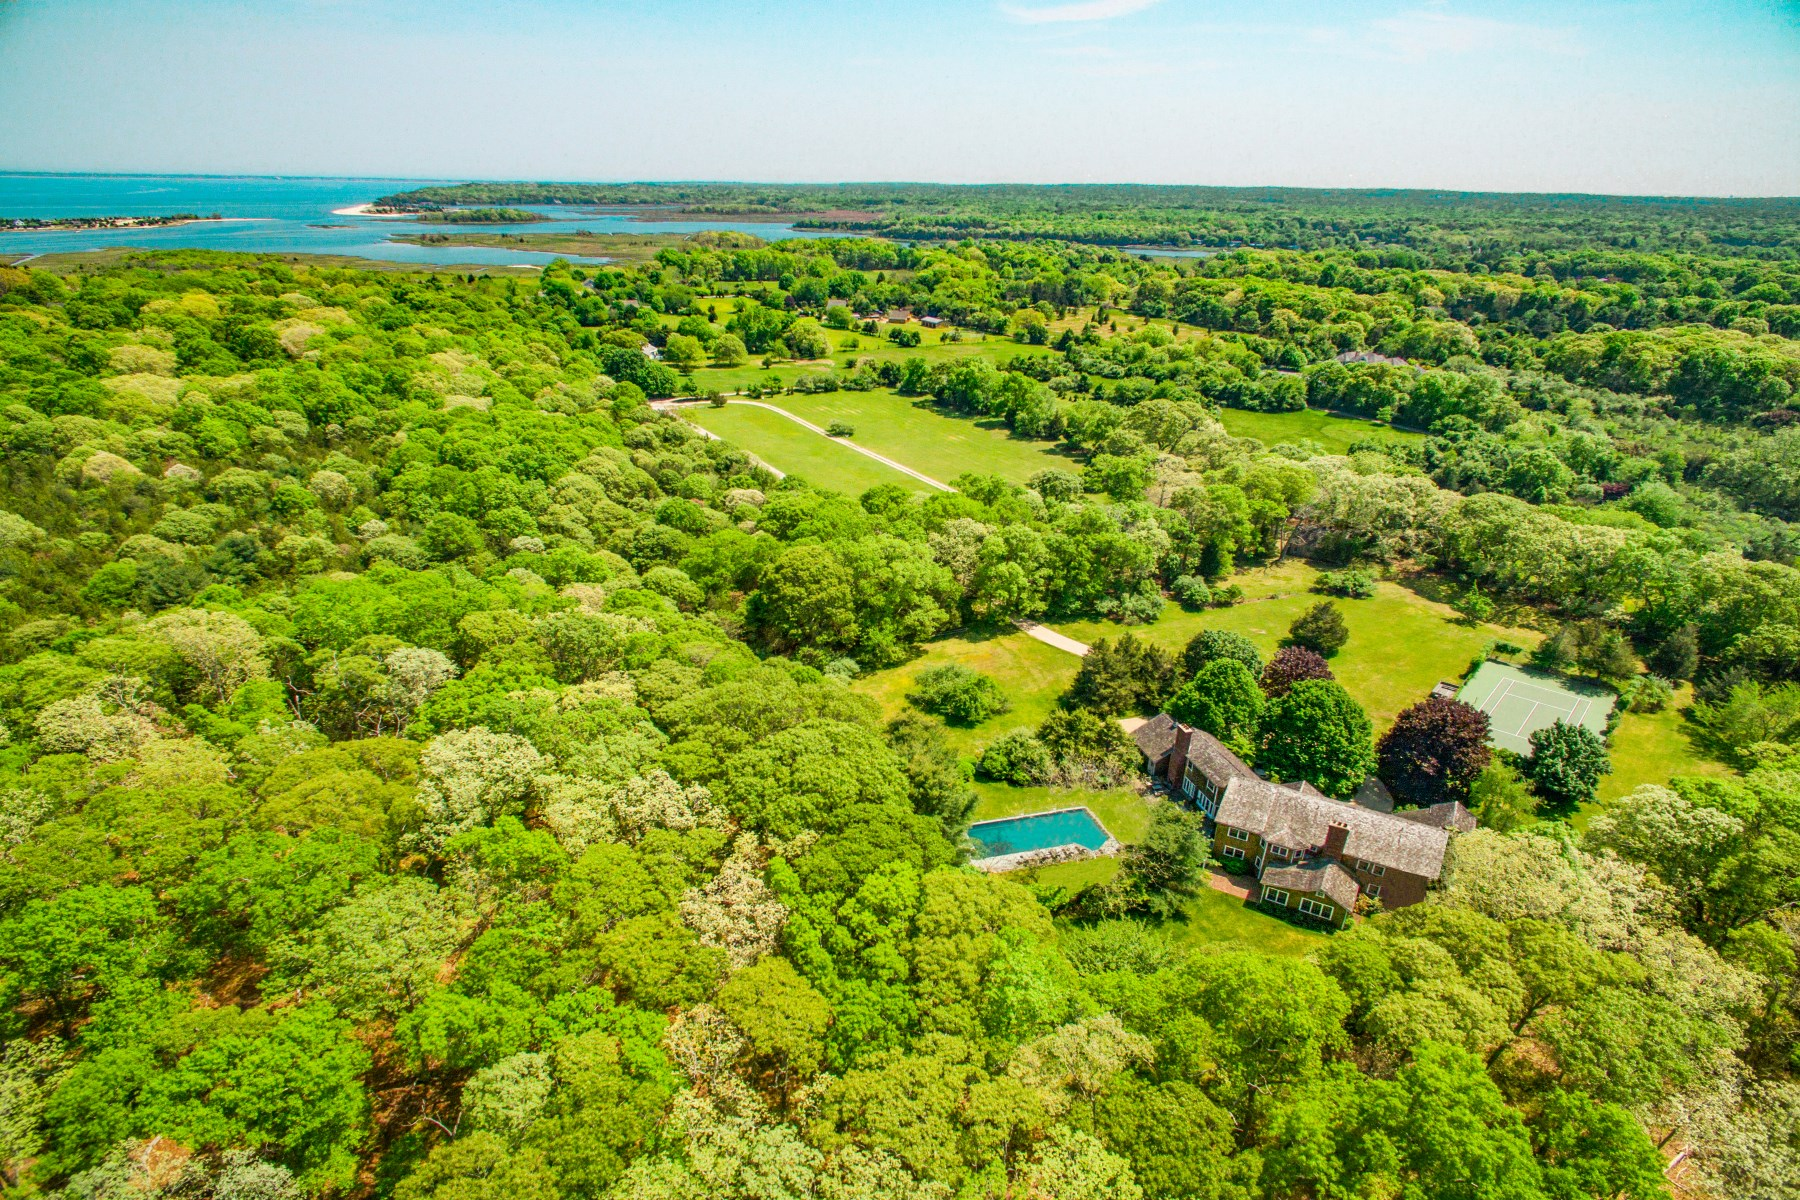 Single Family Home for Sale at Secluded 4.3 Acre 28 Farmhouse Lane Springs, East Hampton, New York, 11937 United States